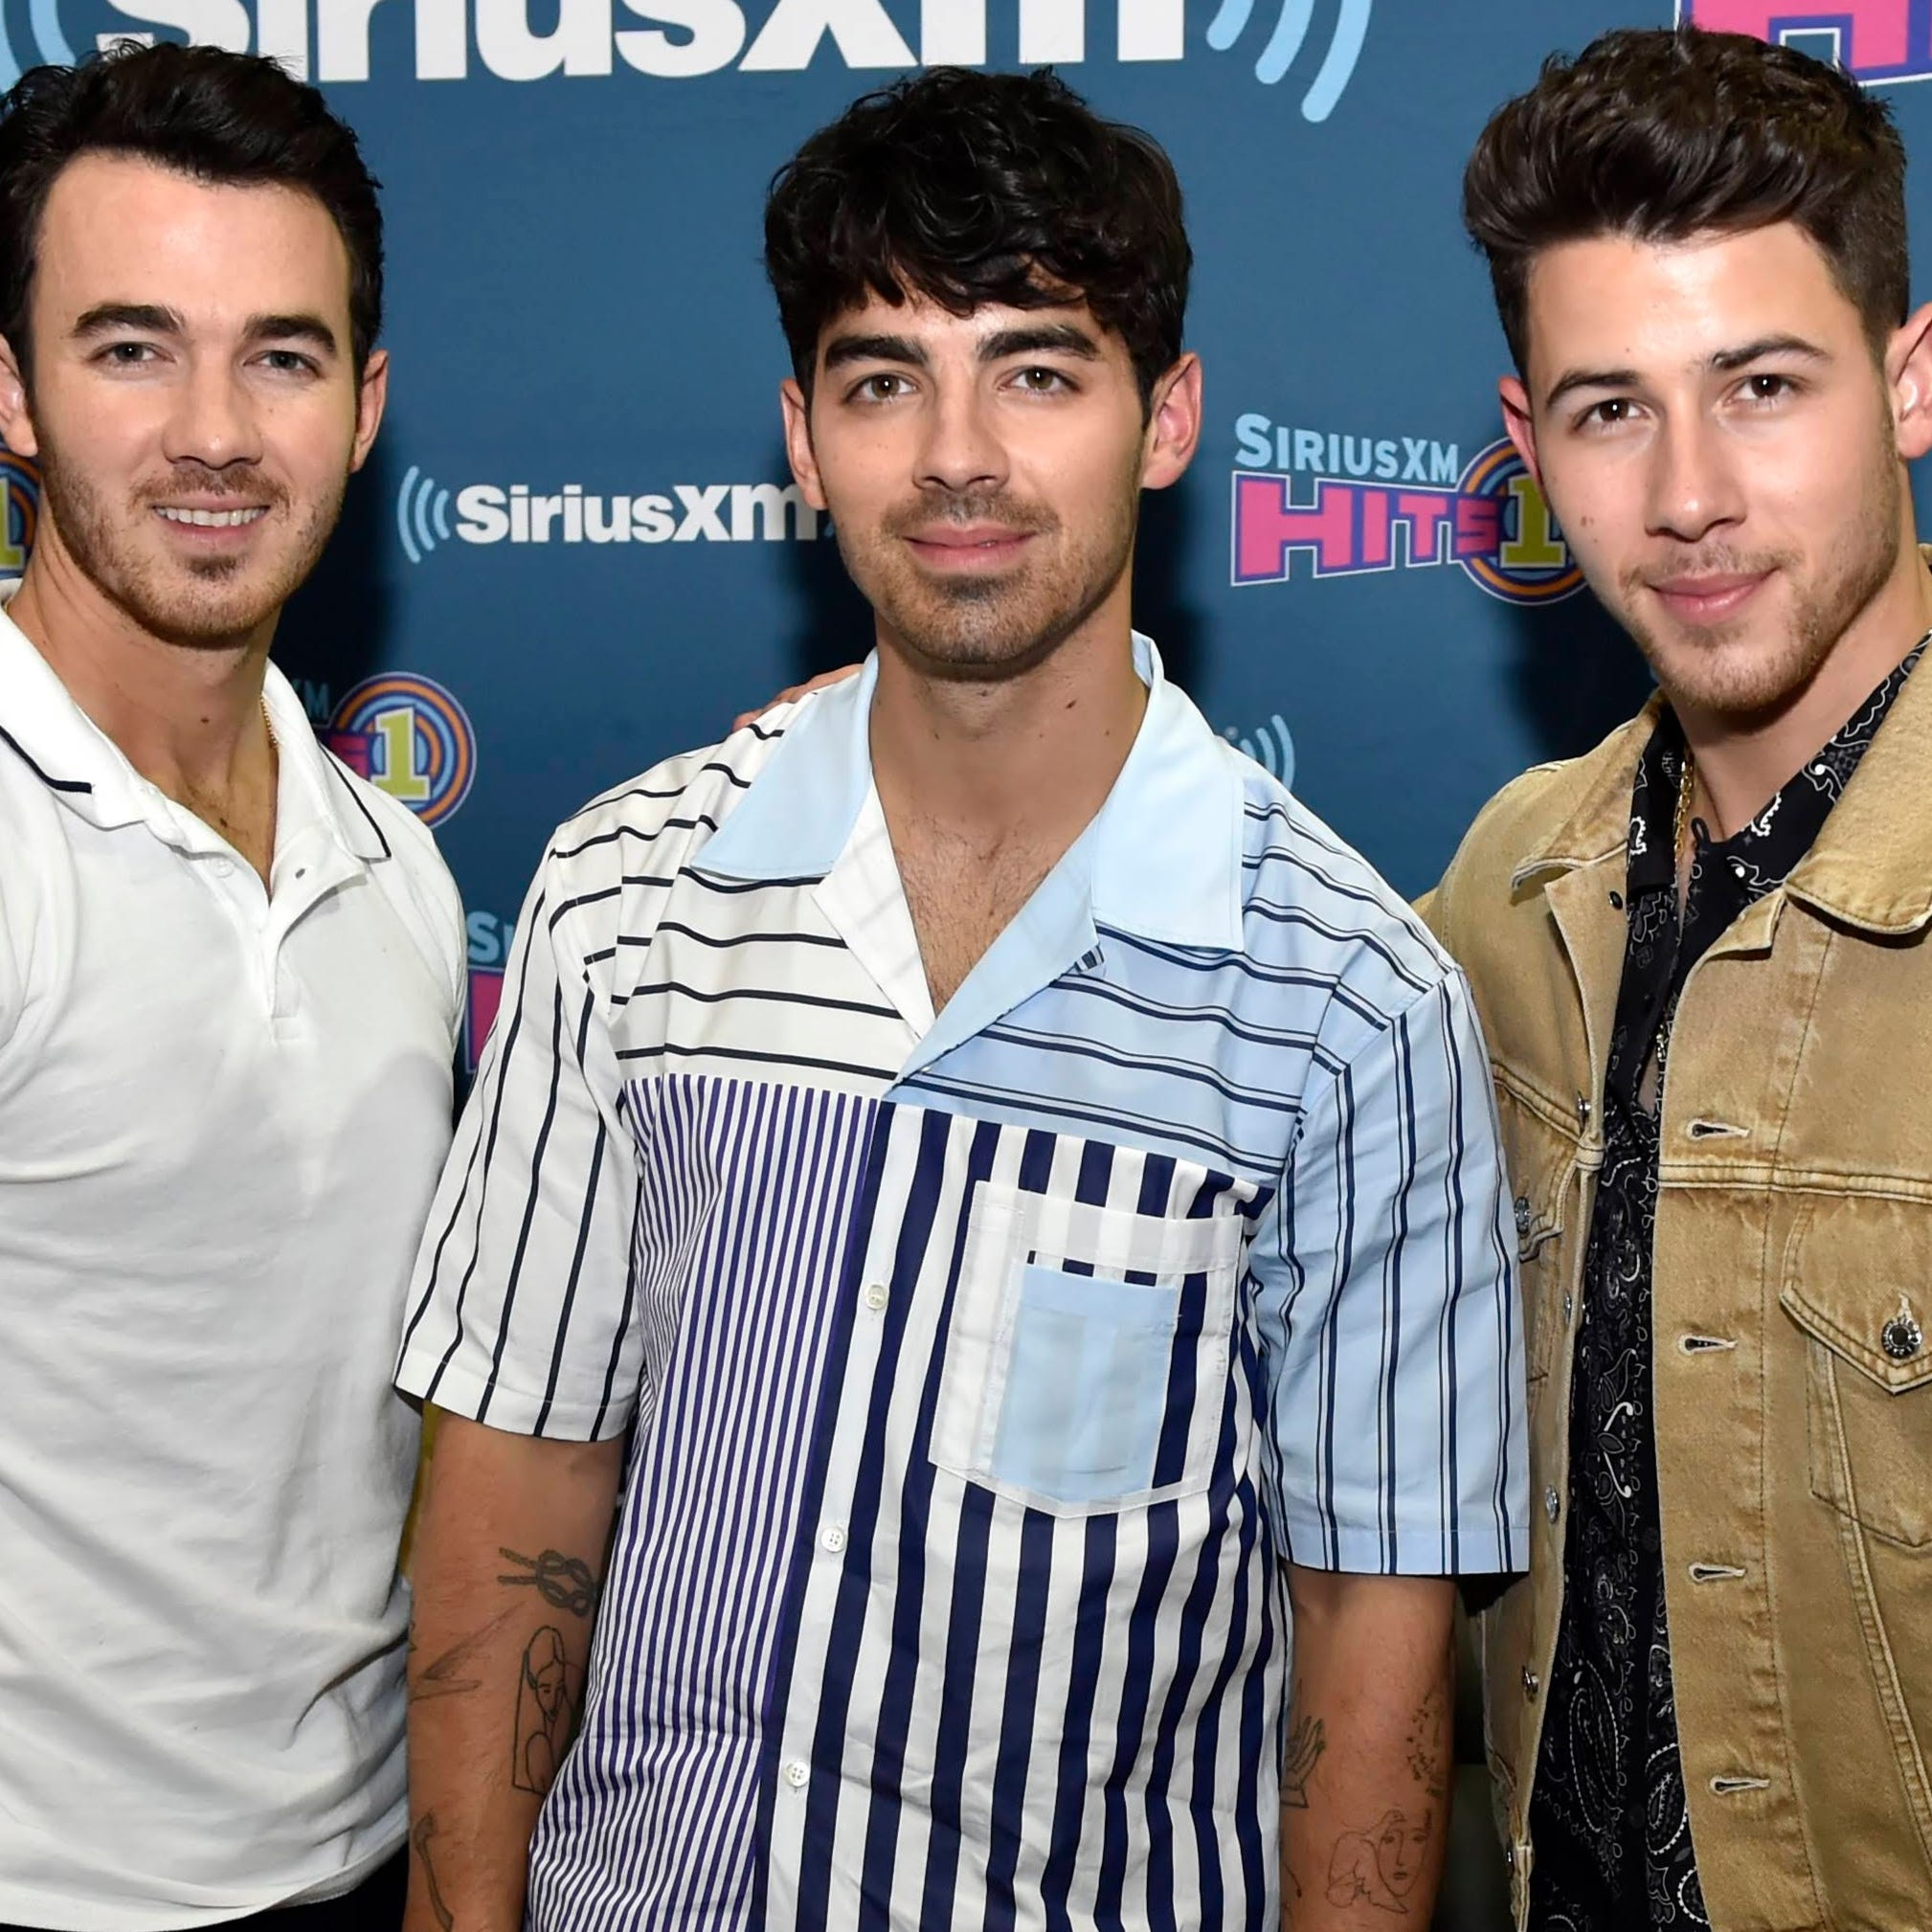 Jonas Brothers 'Happiness Begins' tour will make stop in Indianapolis